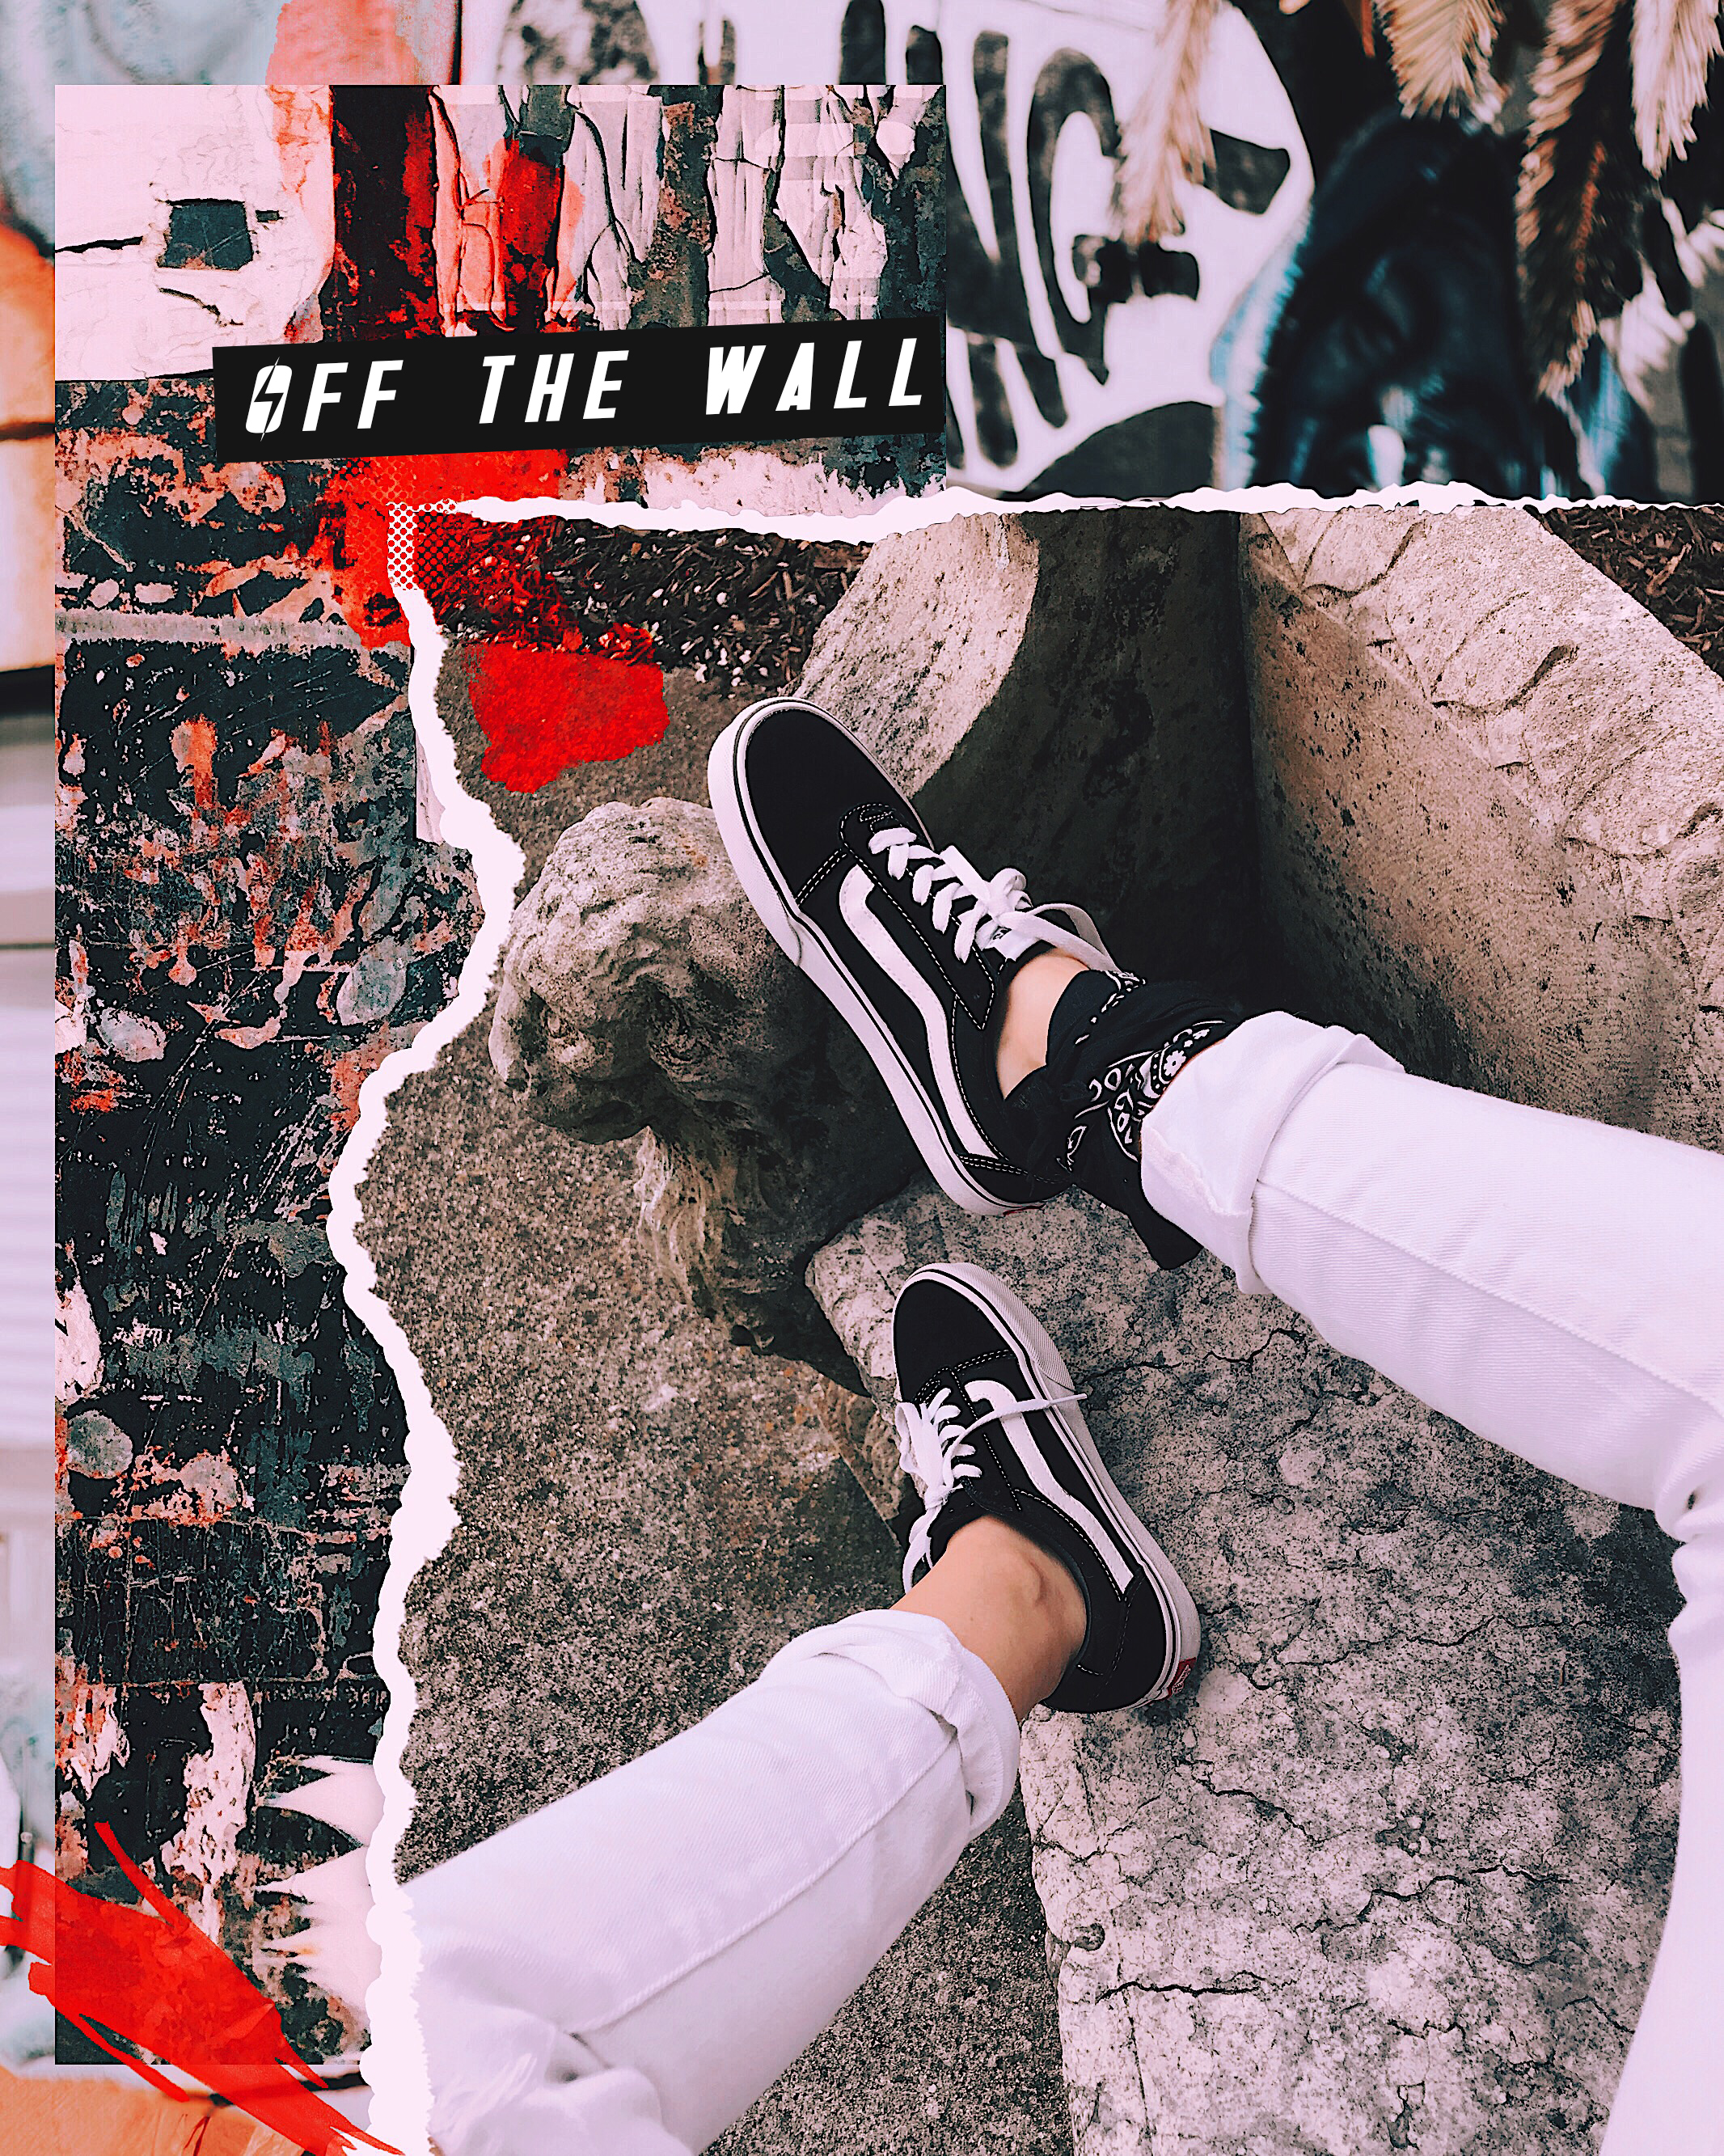 VANS Off The Wall Style Unsettled